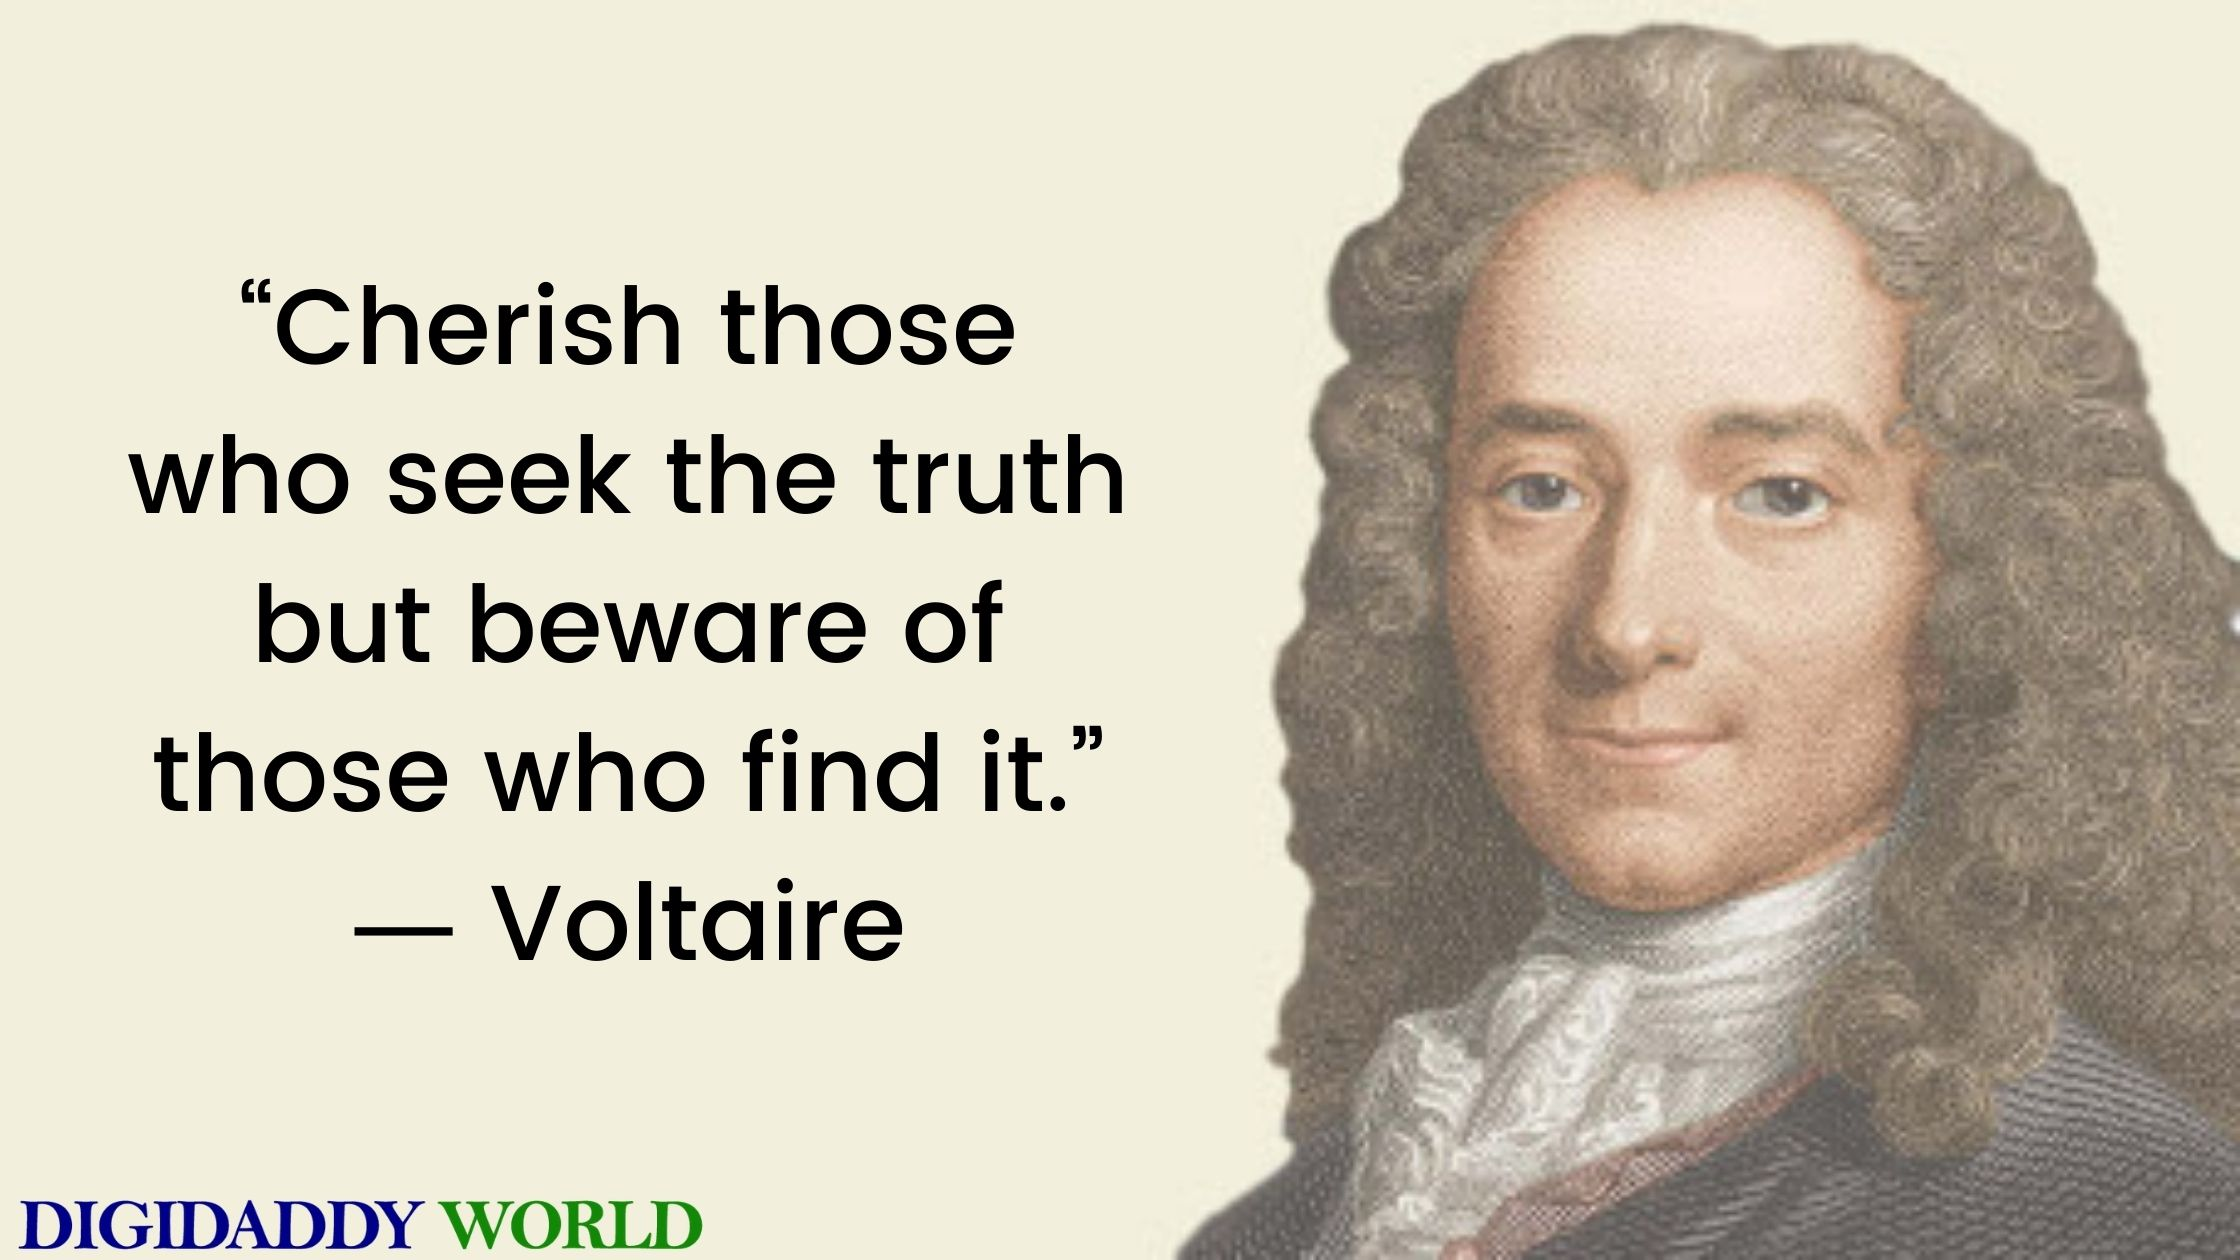 Voltaire Quotes About Love, Government, Religion